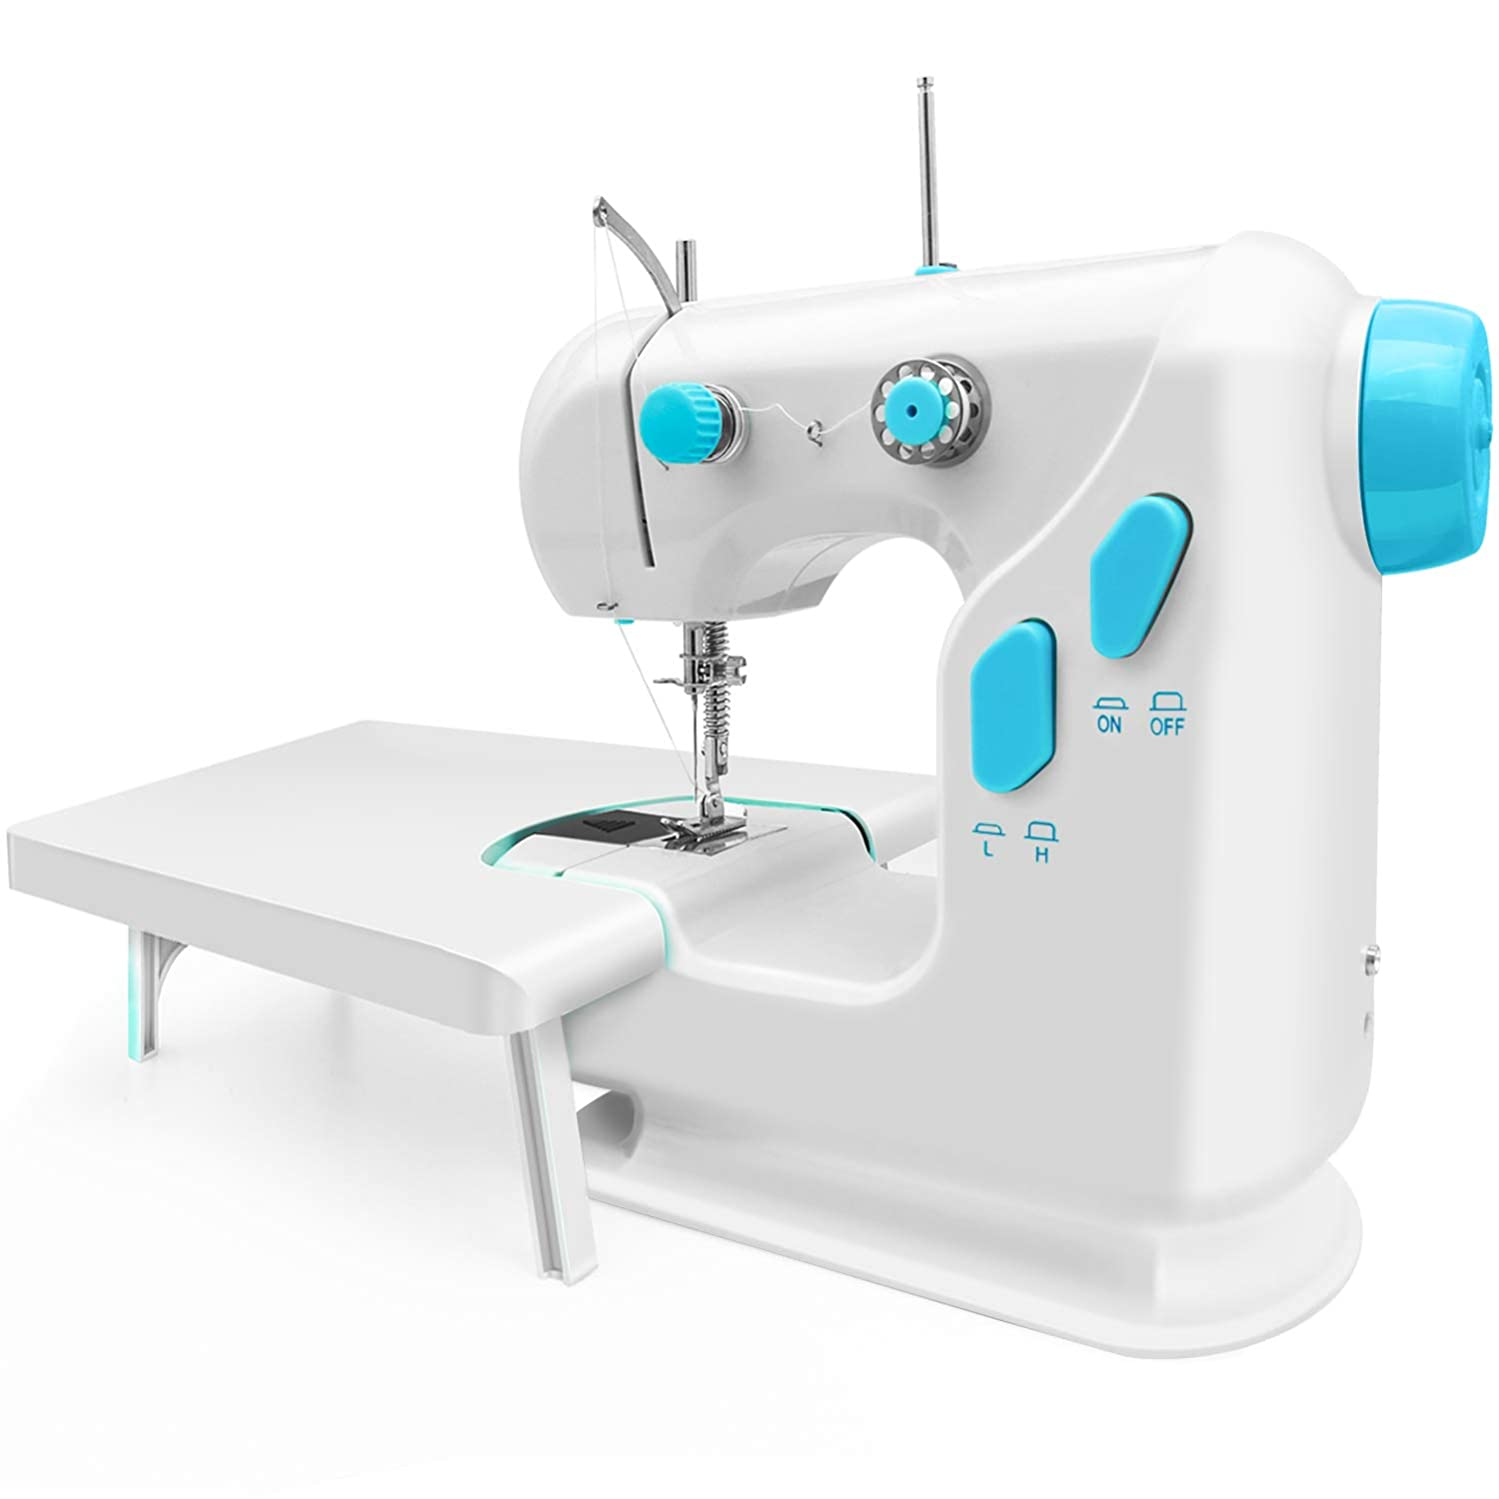 Mini Beginner Sewing Machine, Built in Metal Hook Tip, Portable Adjustable 2-Speed Sew Machine with Extension Table and Foot Pedal Kit